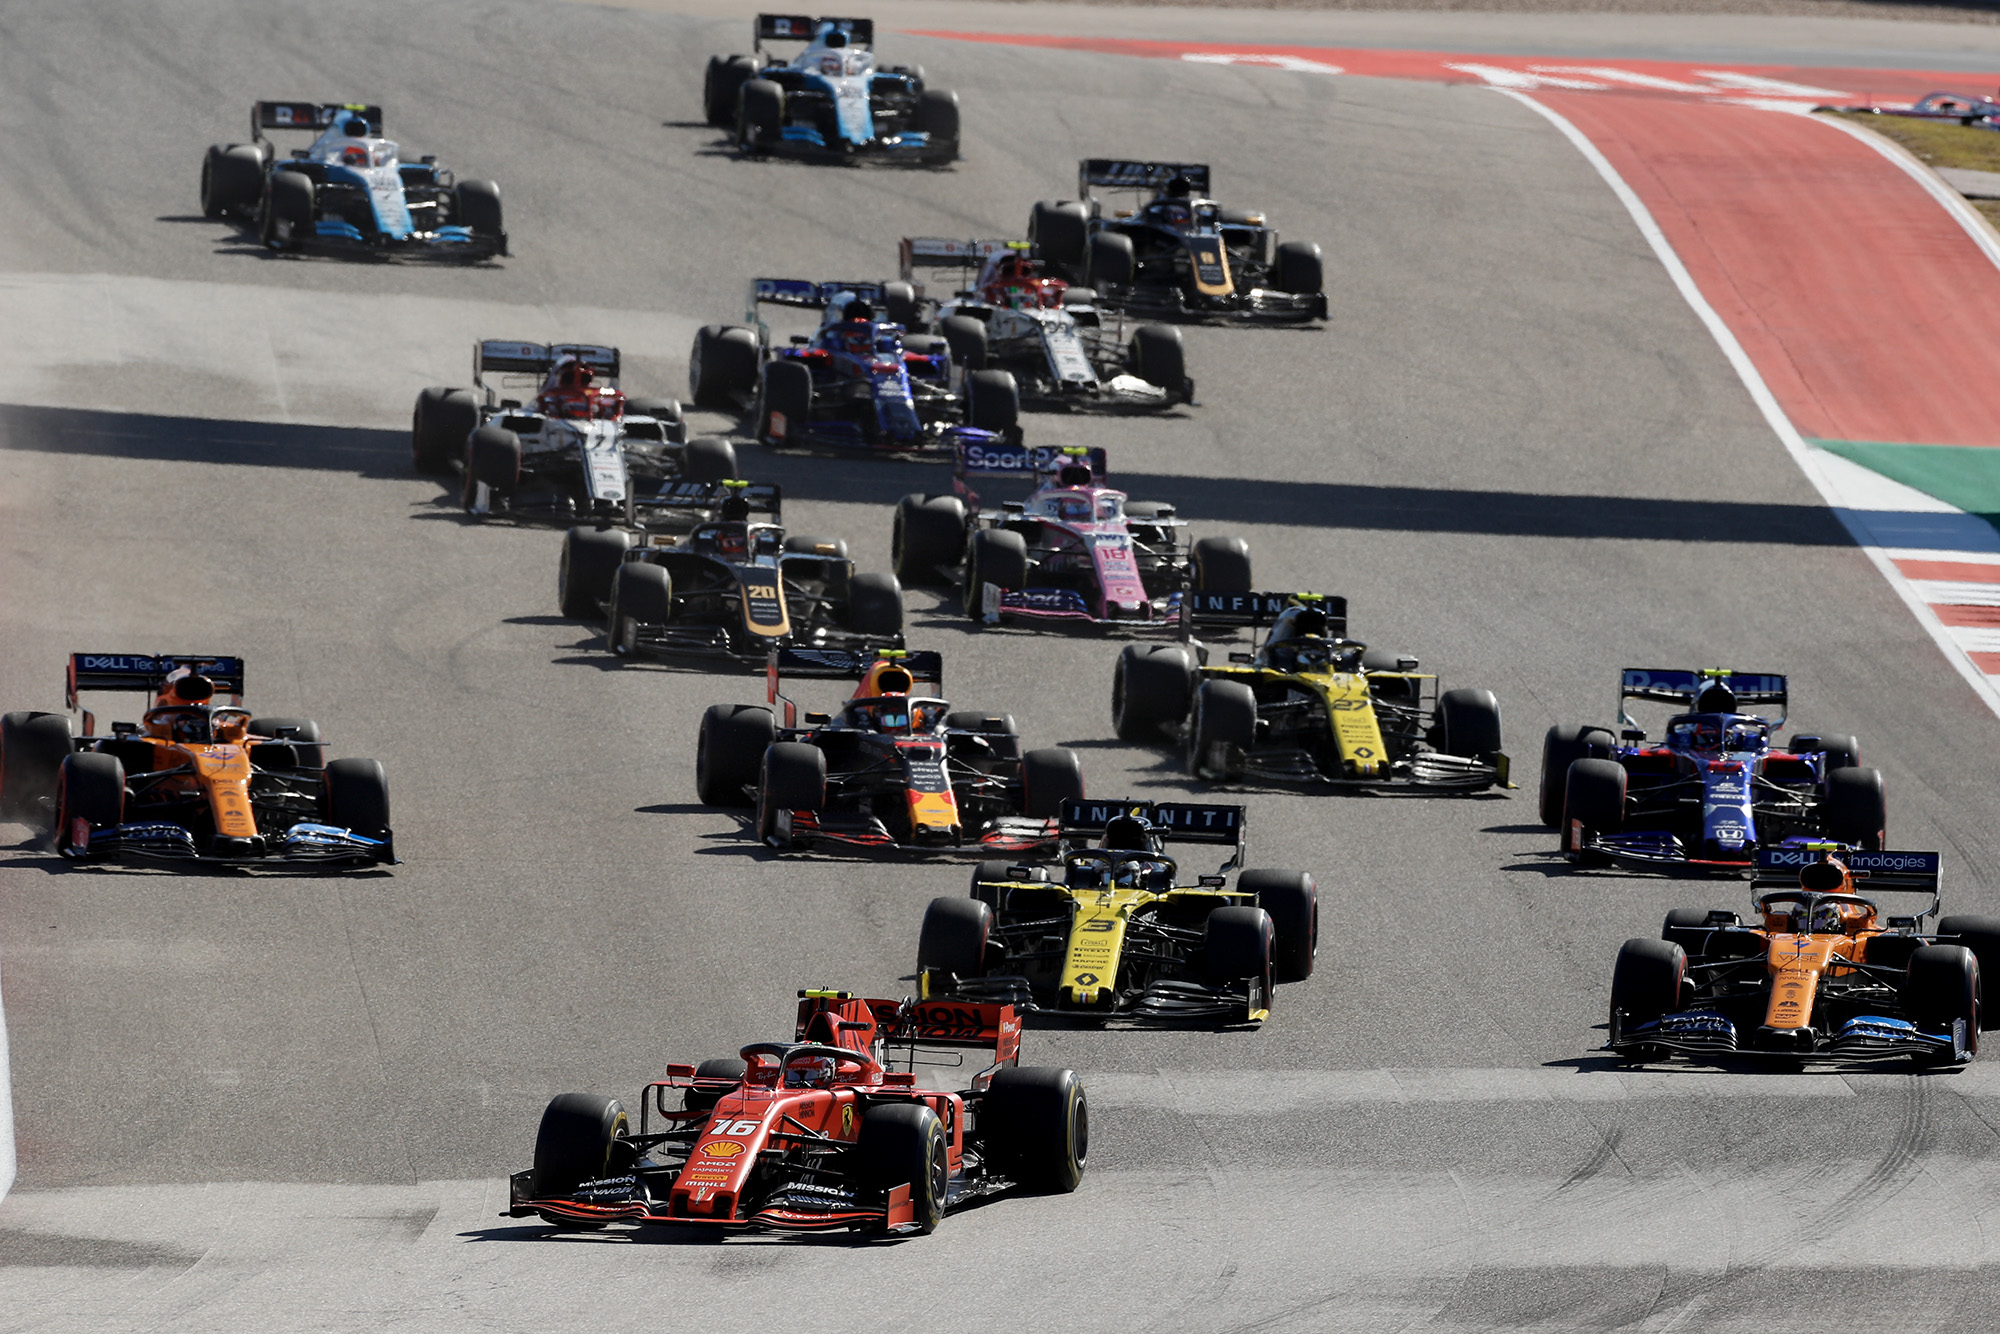 Start of the 2019 US Grand Prix